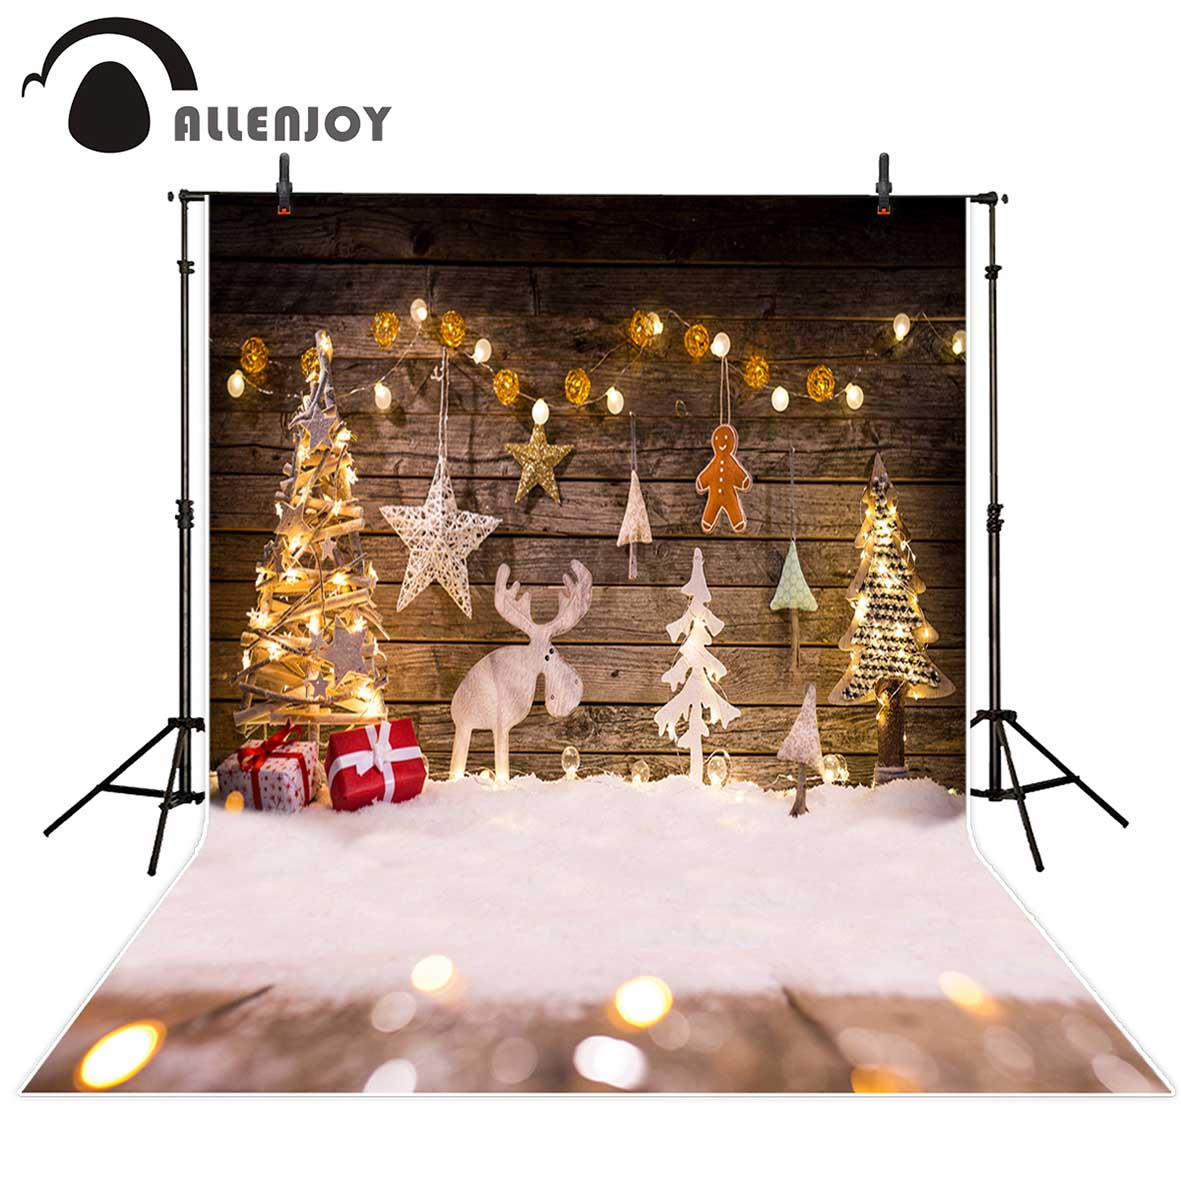 Allenjoy background for photo Christmas shiny tree snow kids wood wall backdrop photocall photobooth photo studio professional allenjoy background for photo studio winter forest snow mountain painting backdrop printed photocall portrait shooting